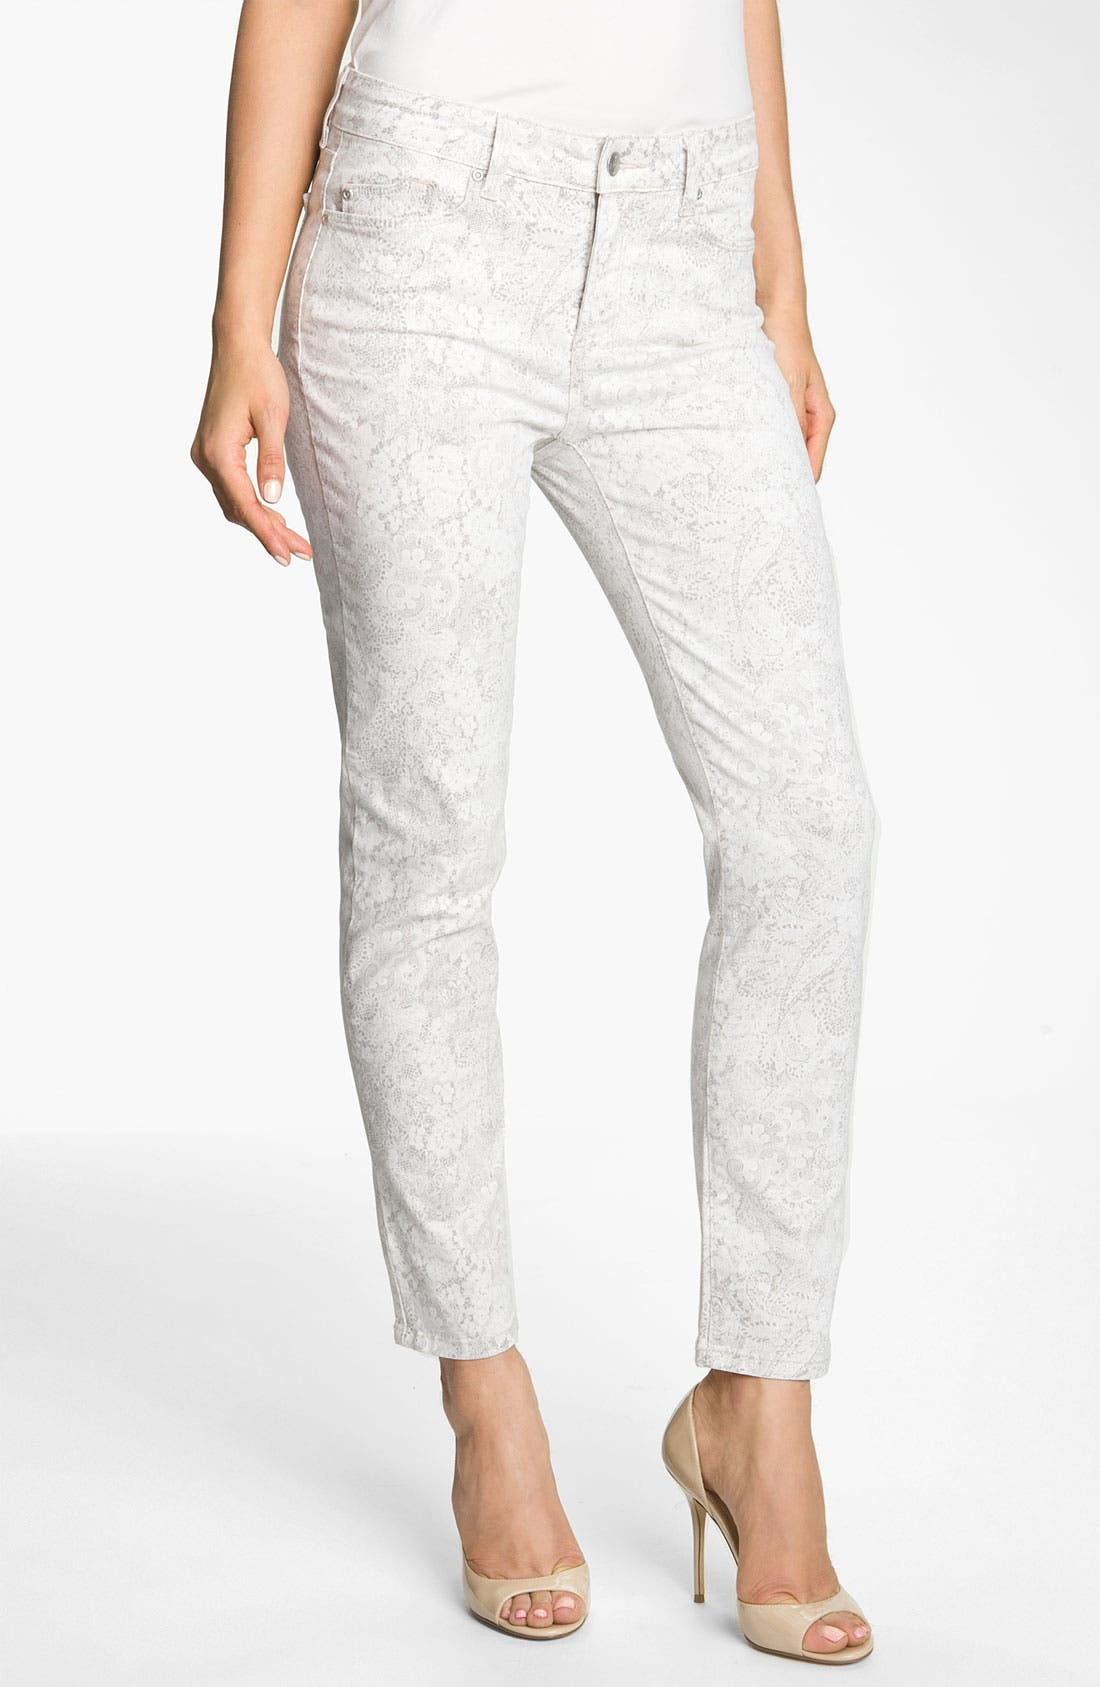 Alternate Image 1 Selected - NYDJ 'Alisha' Lace Print Ankle Jeans